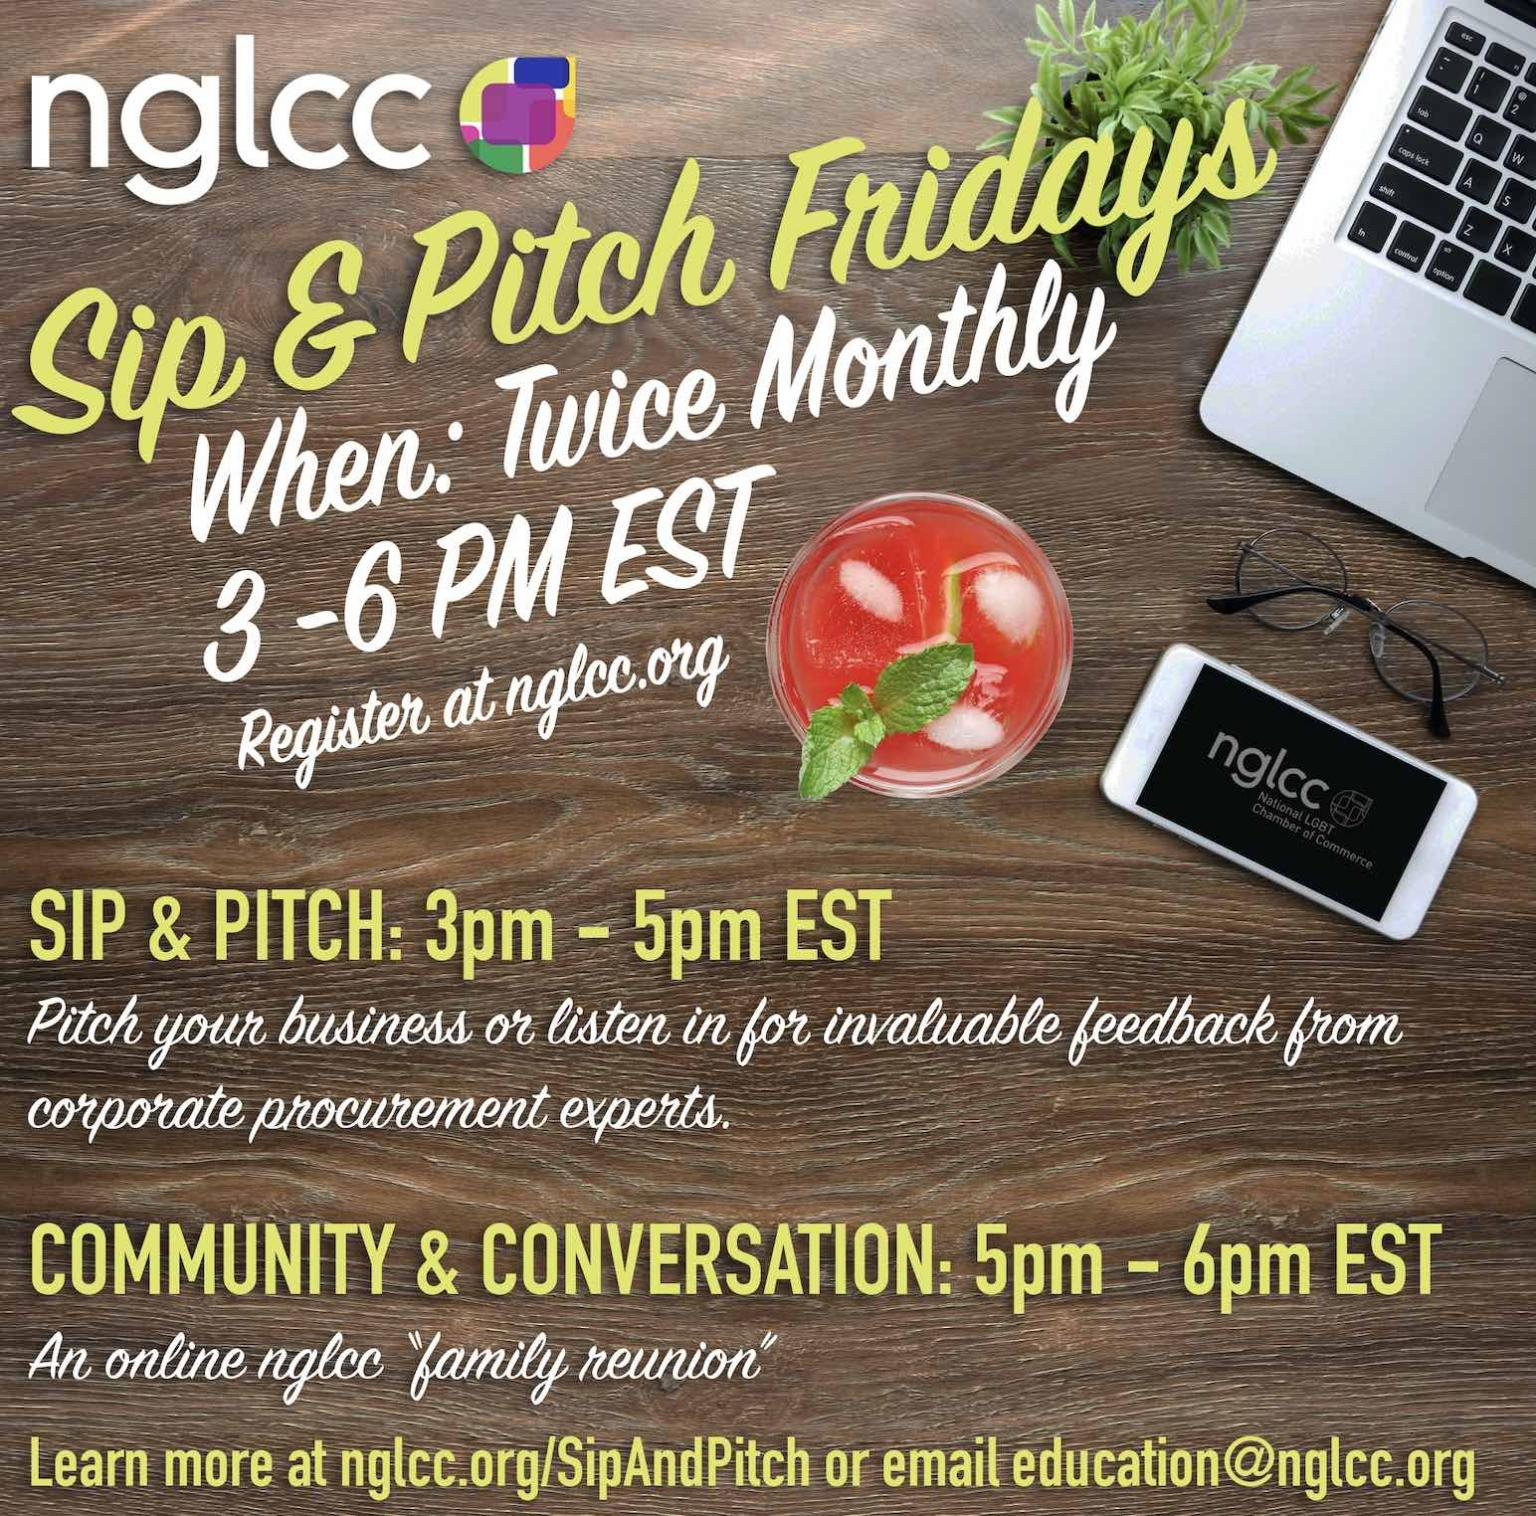 NGCLL-Sip-and-Pitch.jpg